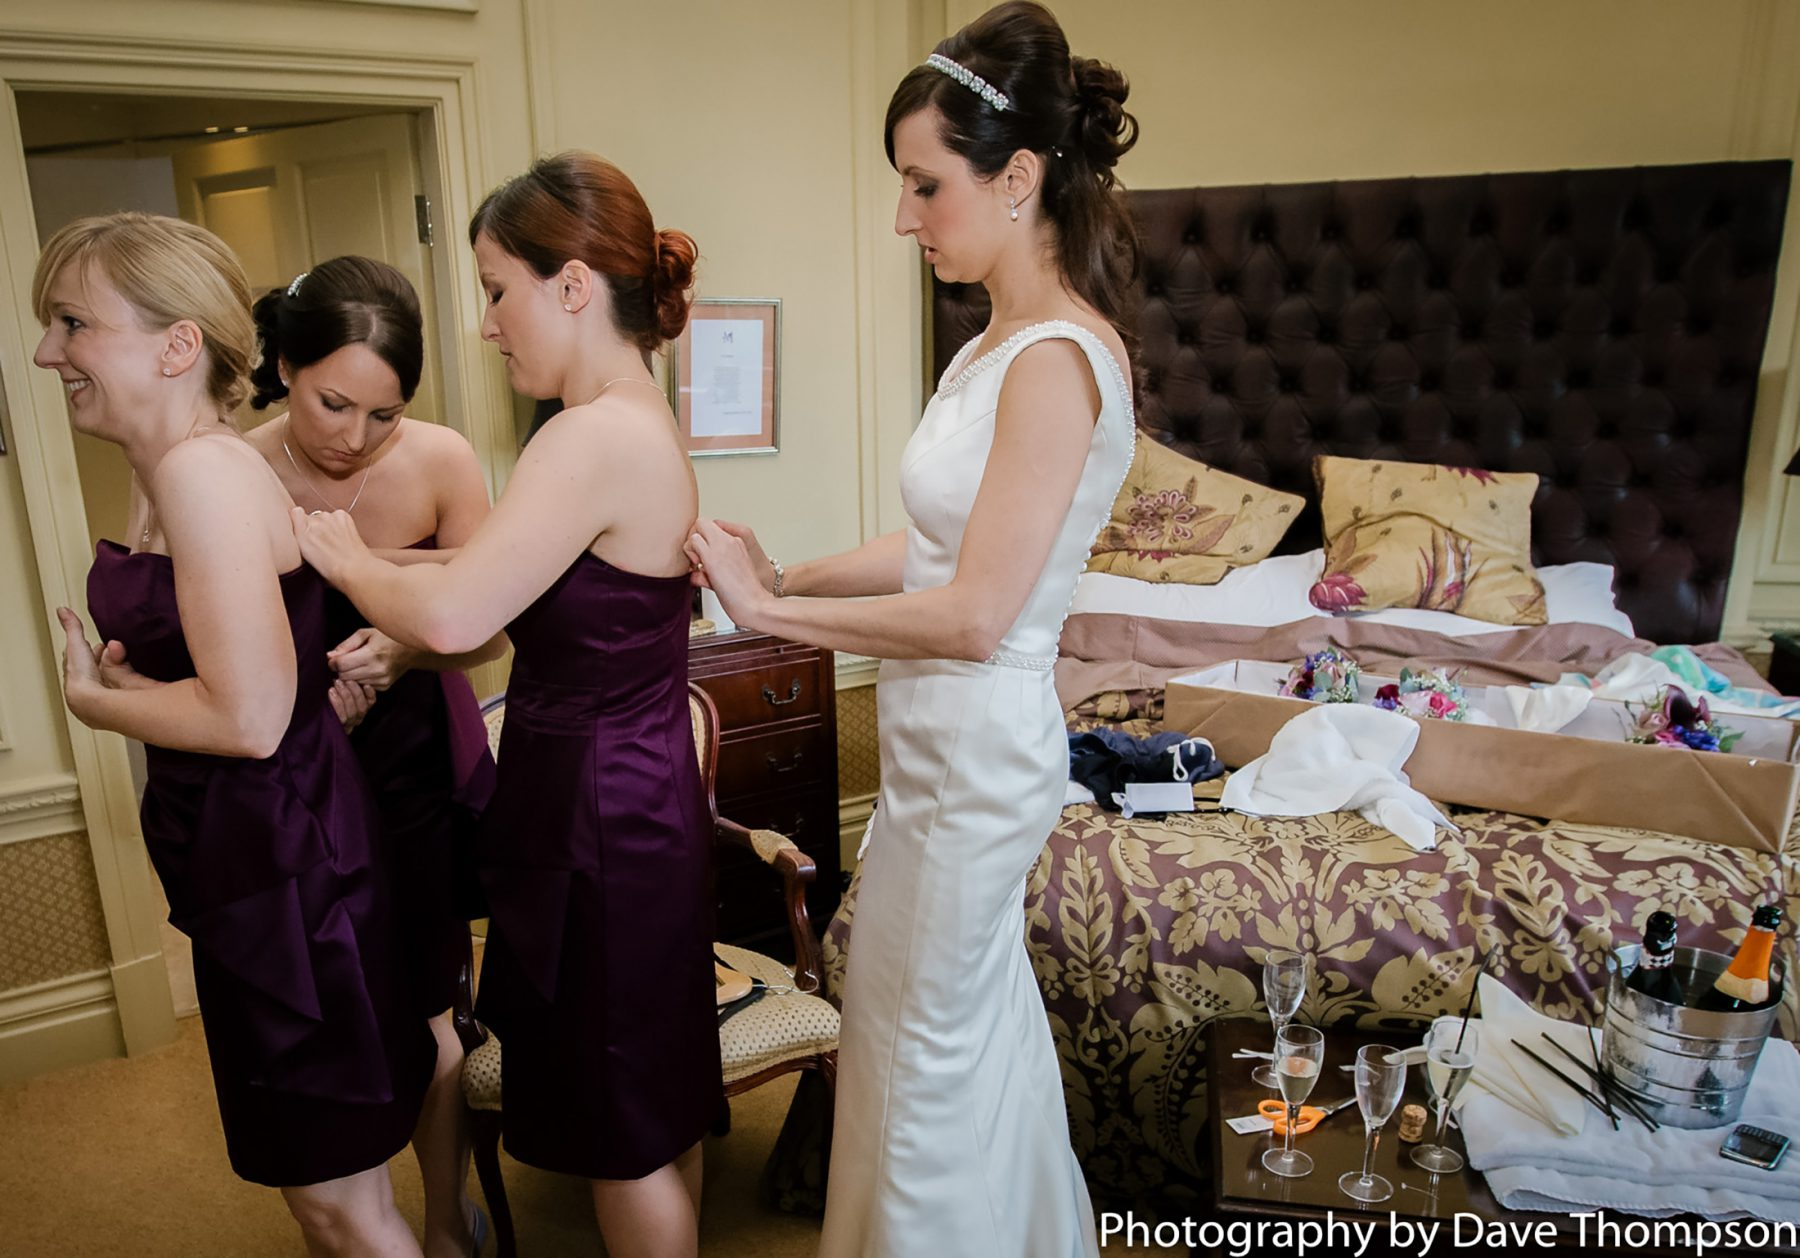 All the members of the bridal party help each other get ready